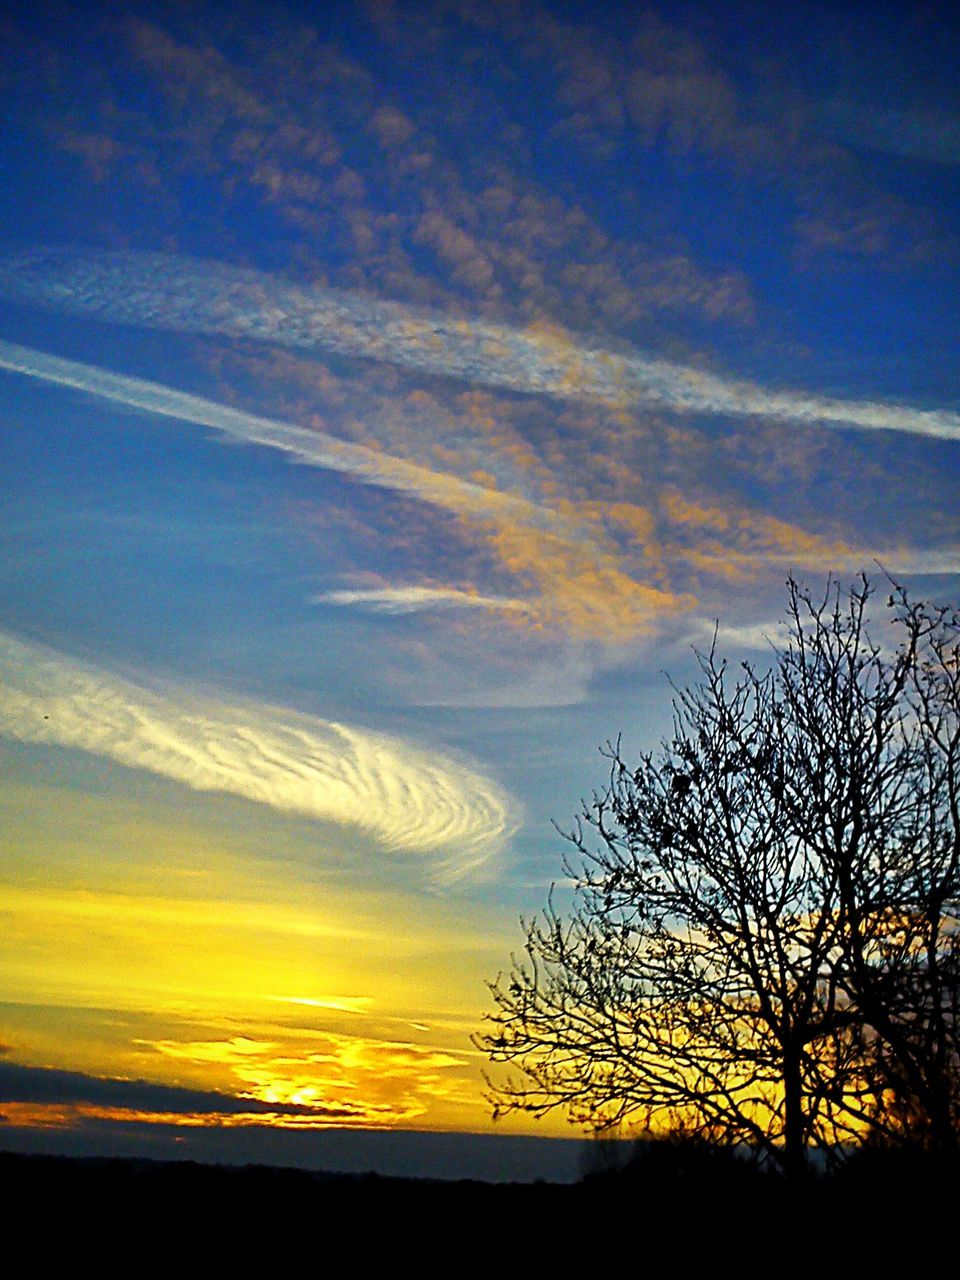 sunset, silhouette, beauty in nature, scenics, nature, tranquil scene, tranquility, sky, majestic, orange color, cloud - sky, tree, no people, yellow, bare tree, outdoors, landscape, vapor trail, day